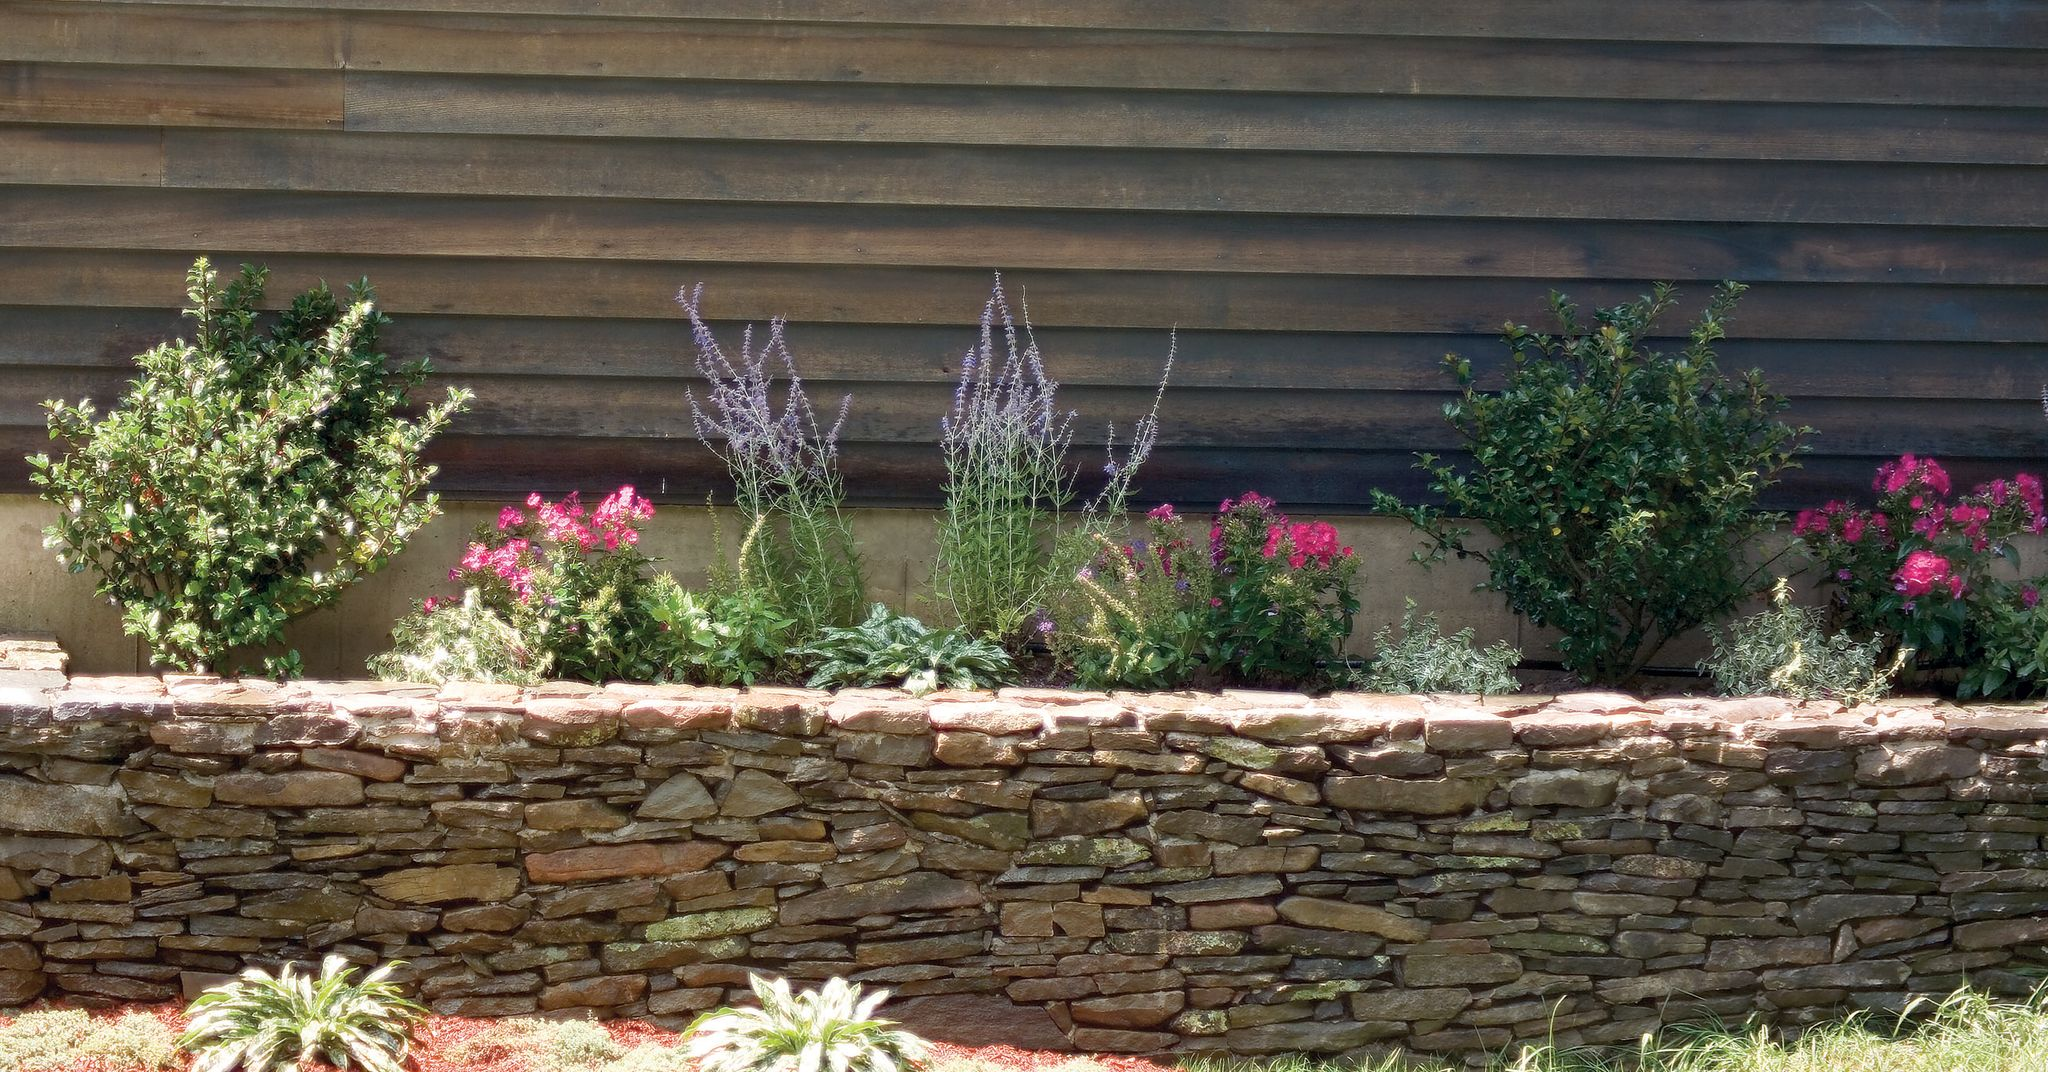 How To Build a Stone Wall That's Stylish and Functional